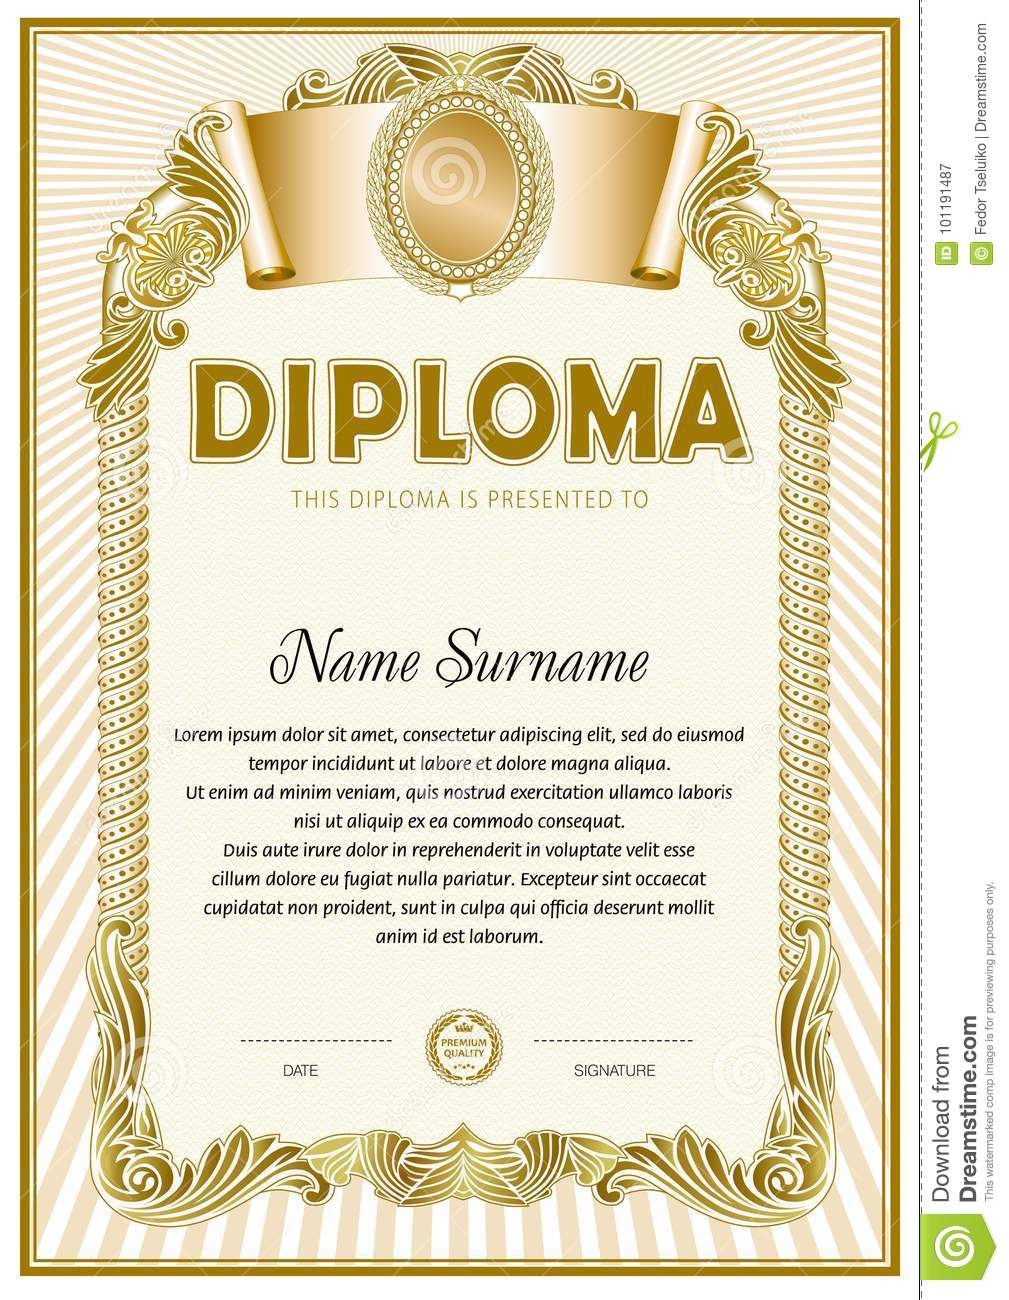 diploma blank template stock vector illustration of certificate